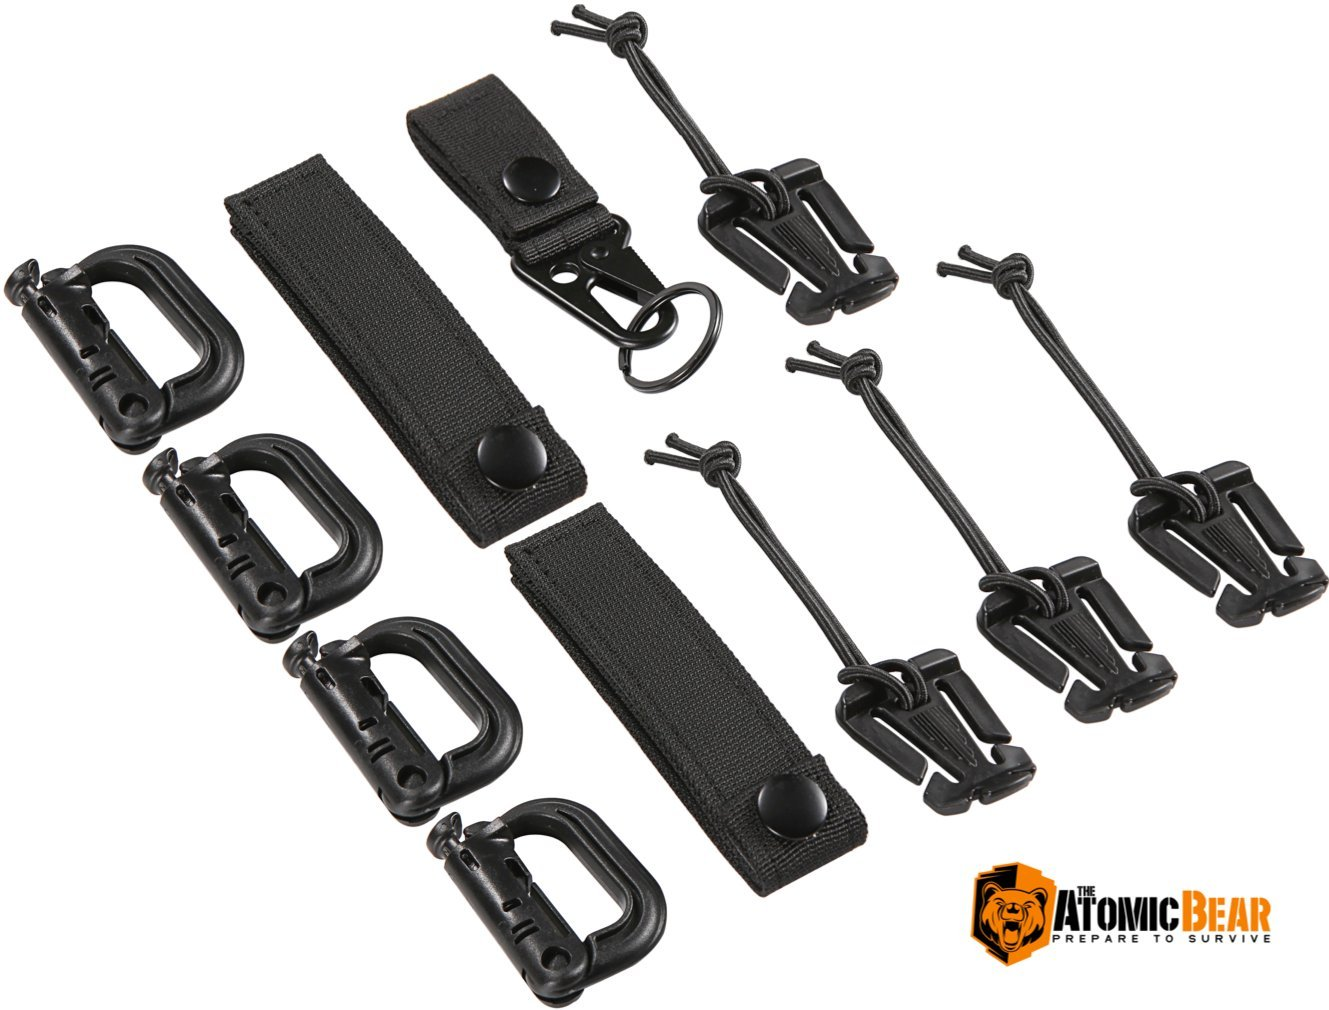 """Kit of 11 Attachments for 1"""" Webbing Molle Bags, Tactical Backpack, Tactical Vest, Belt – 4 Grimlock Locking D-Ring – 4 Molle Web Dominator Elastic Strings – 2 Straps 4"""" MOD Tac Tie - Tactical Molle"""